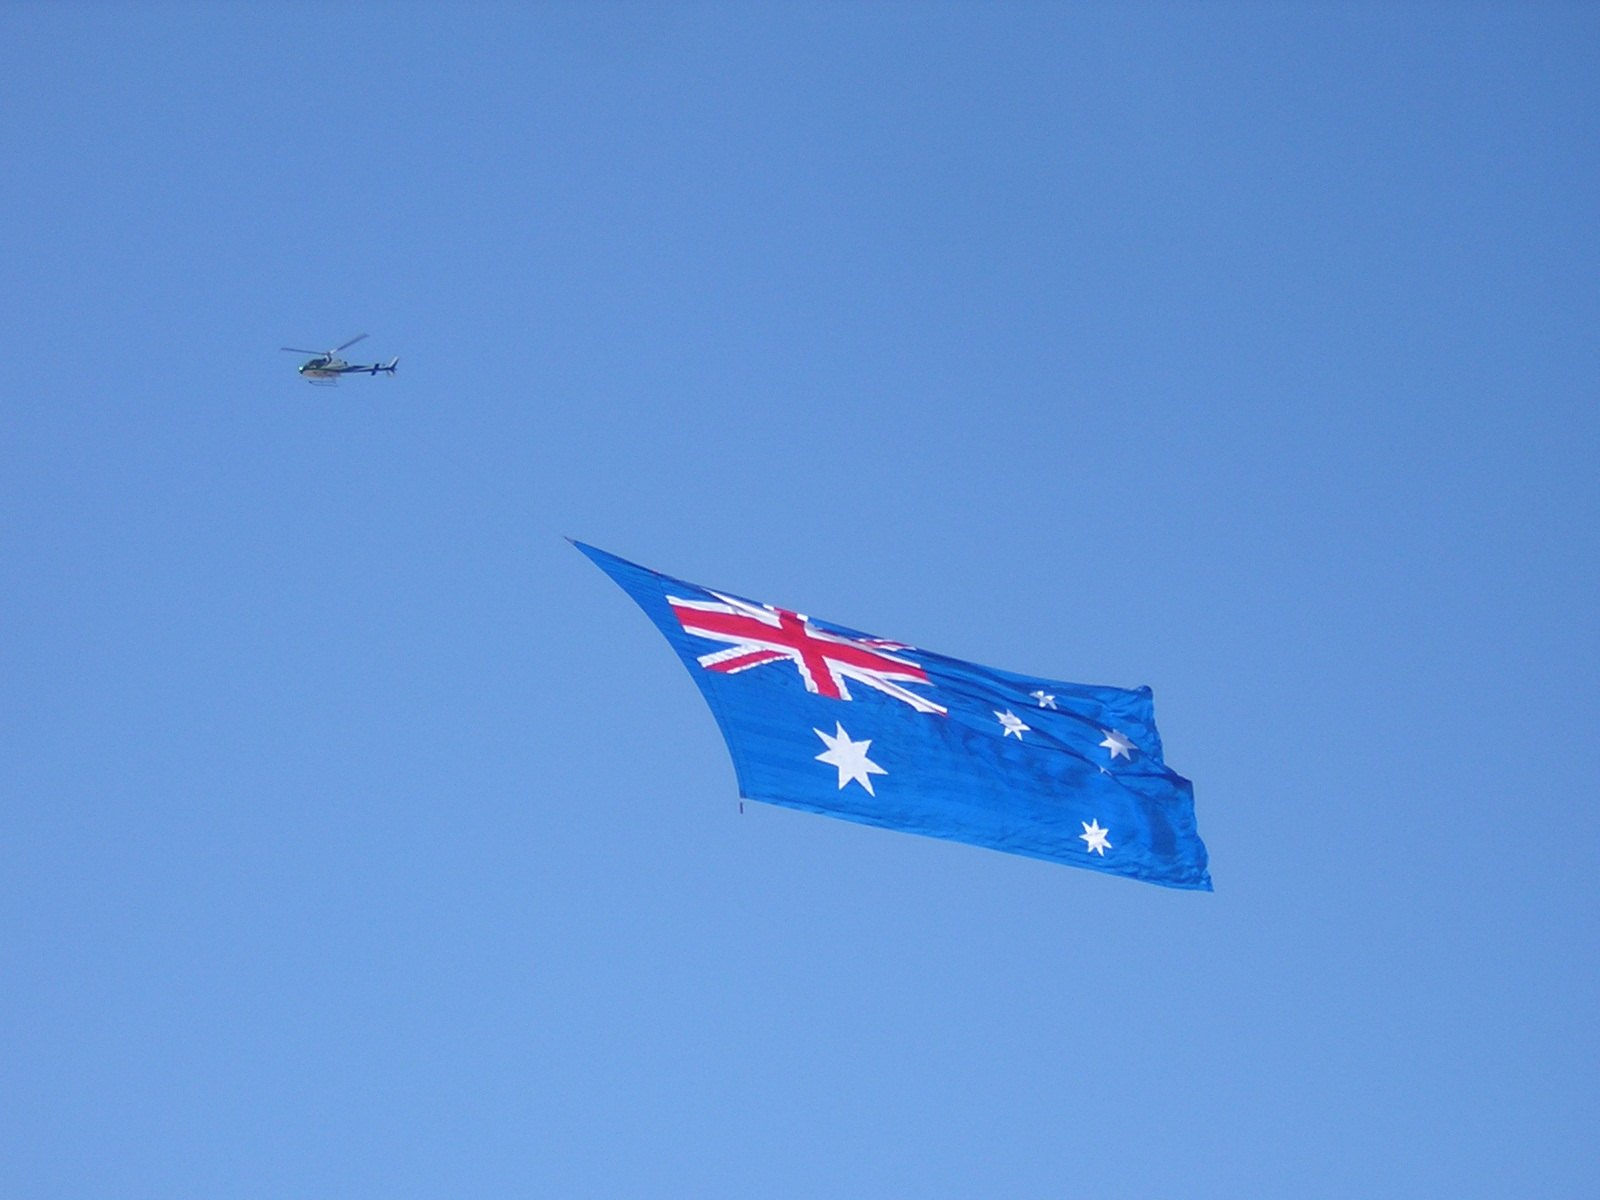 Australia Day, 26th January 2009, Perth